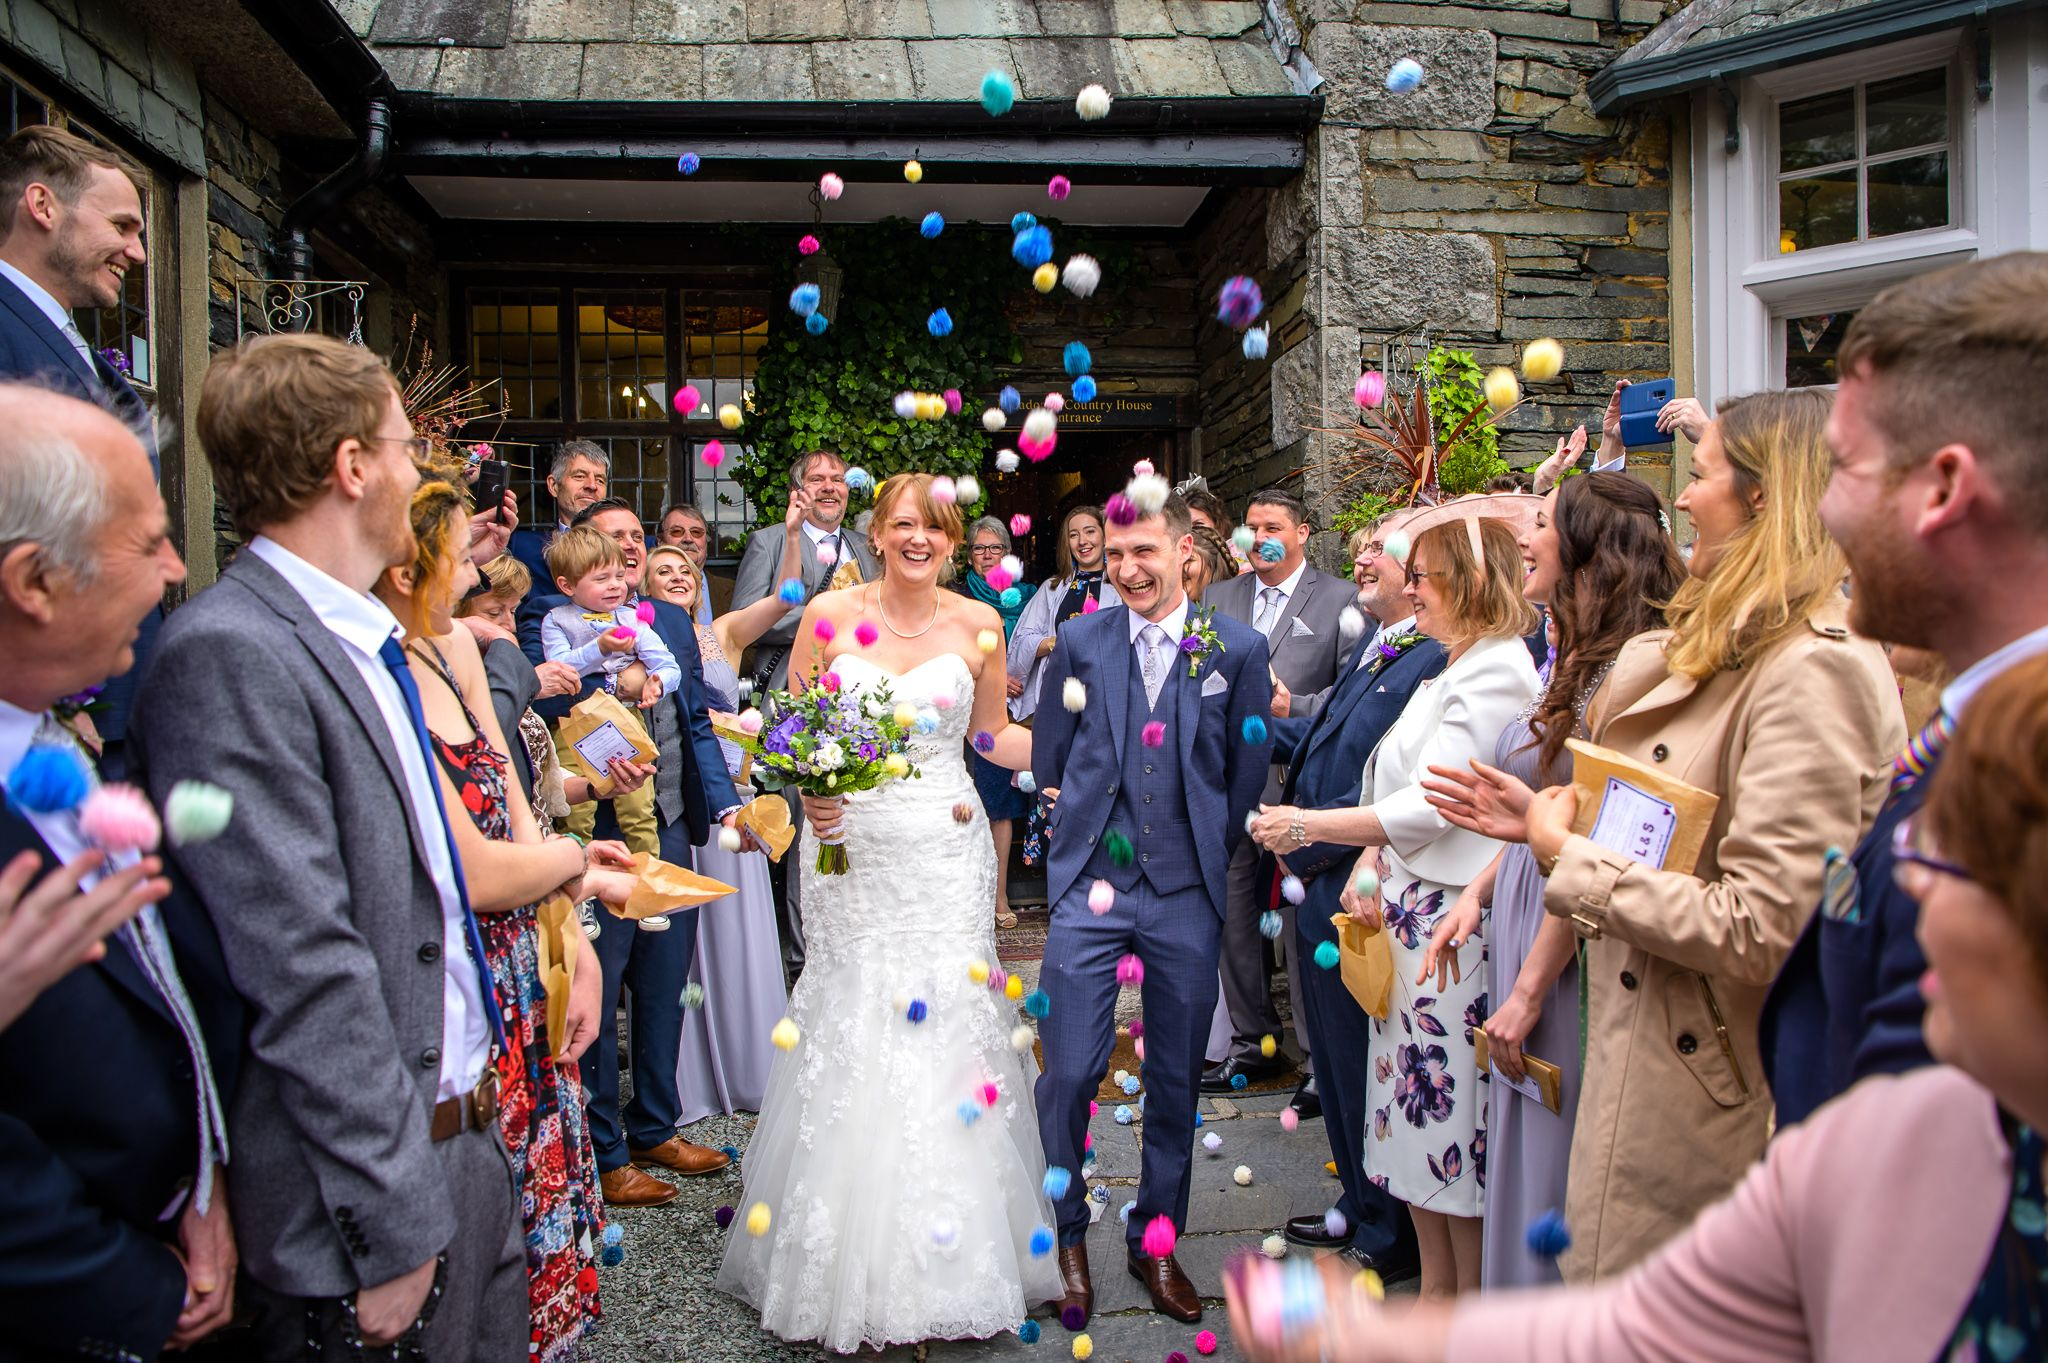 Pom pom confetti shower at Broadoaks Hotel near Windermere